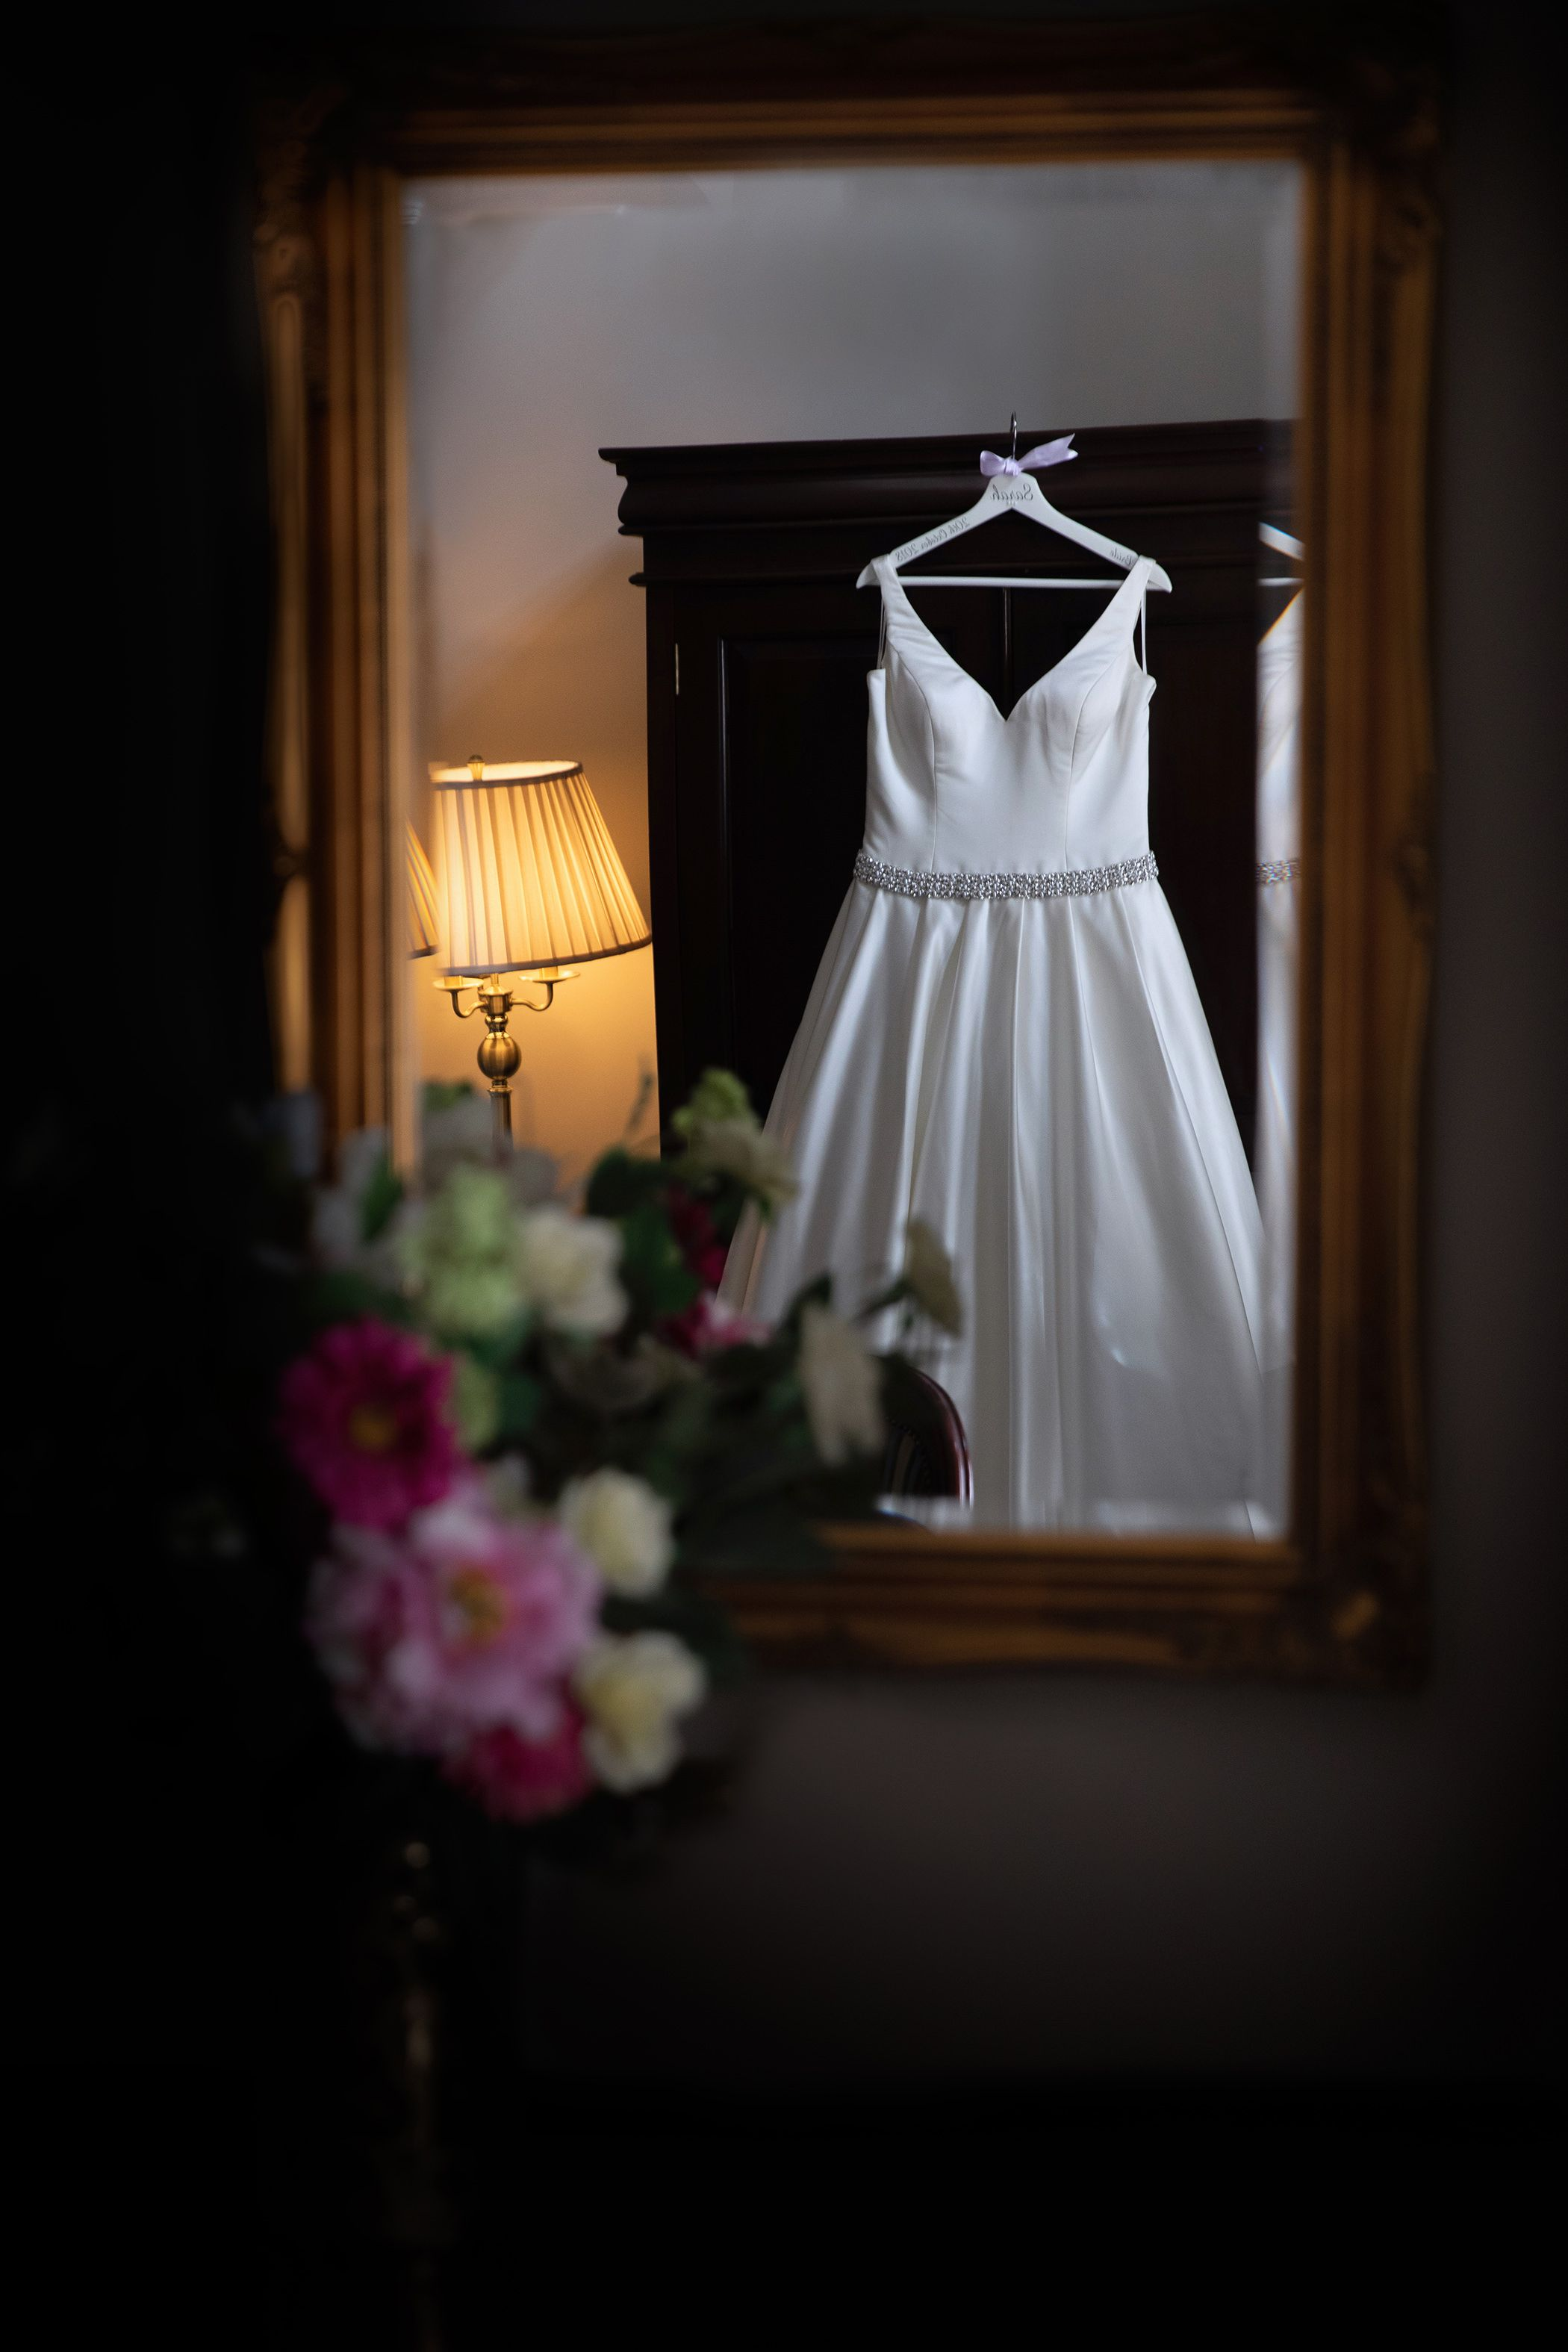 Brides wedding dress